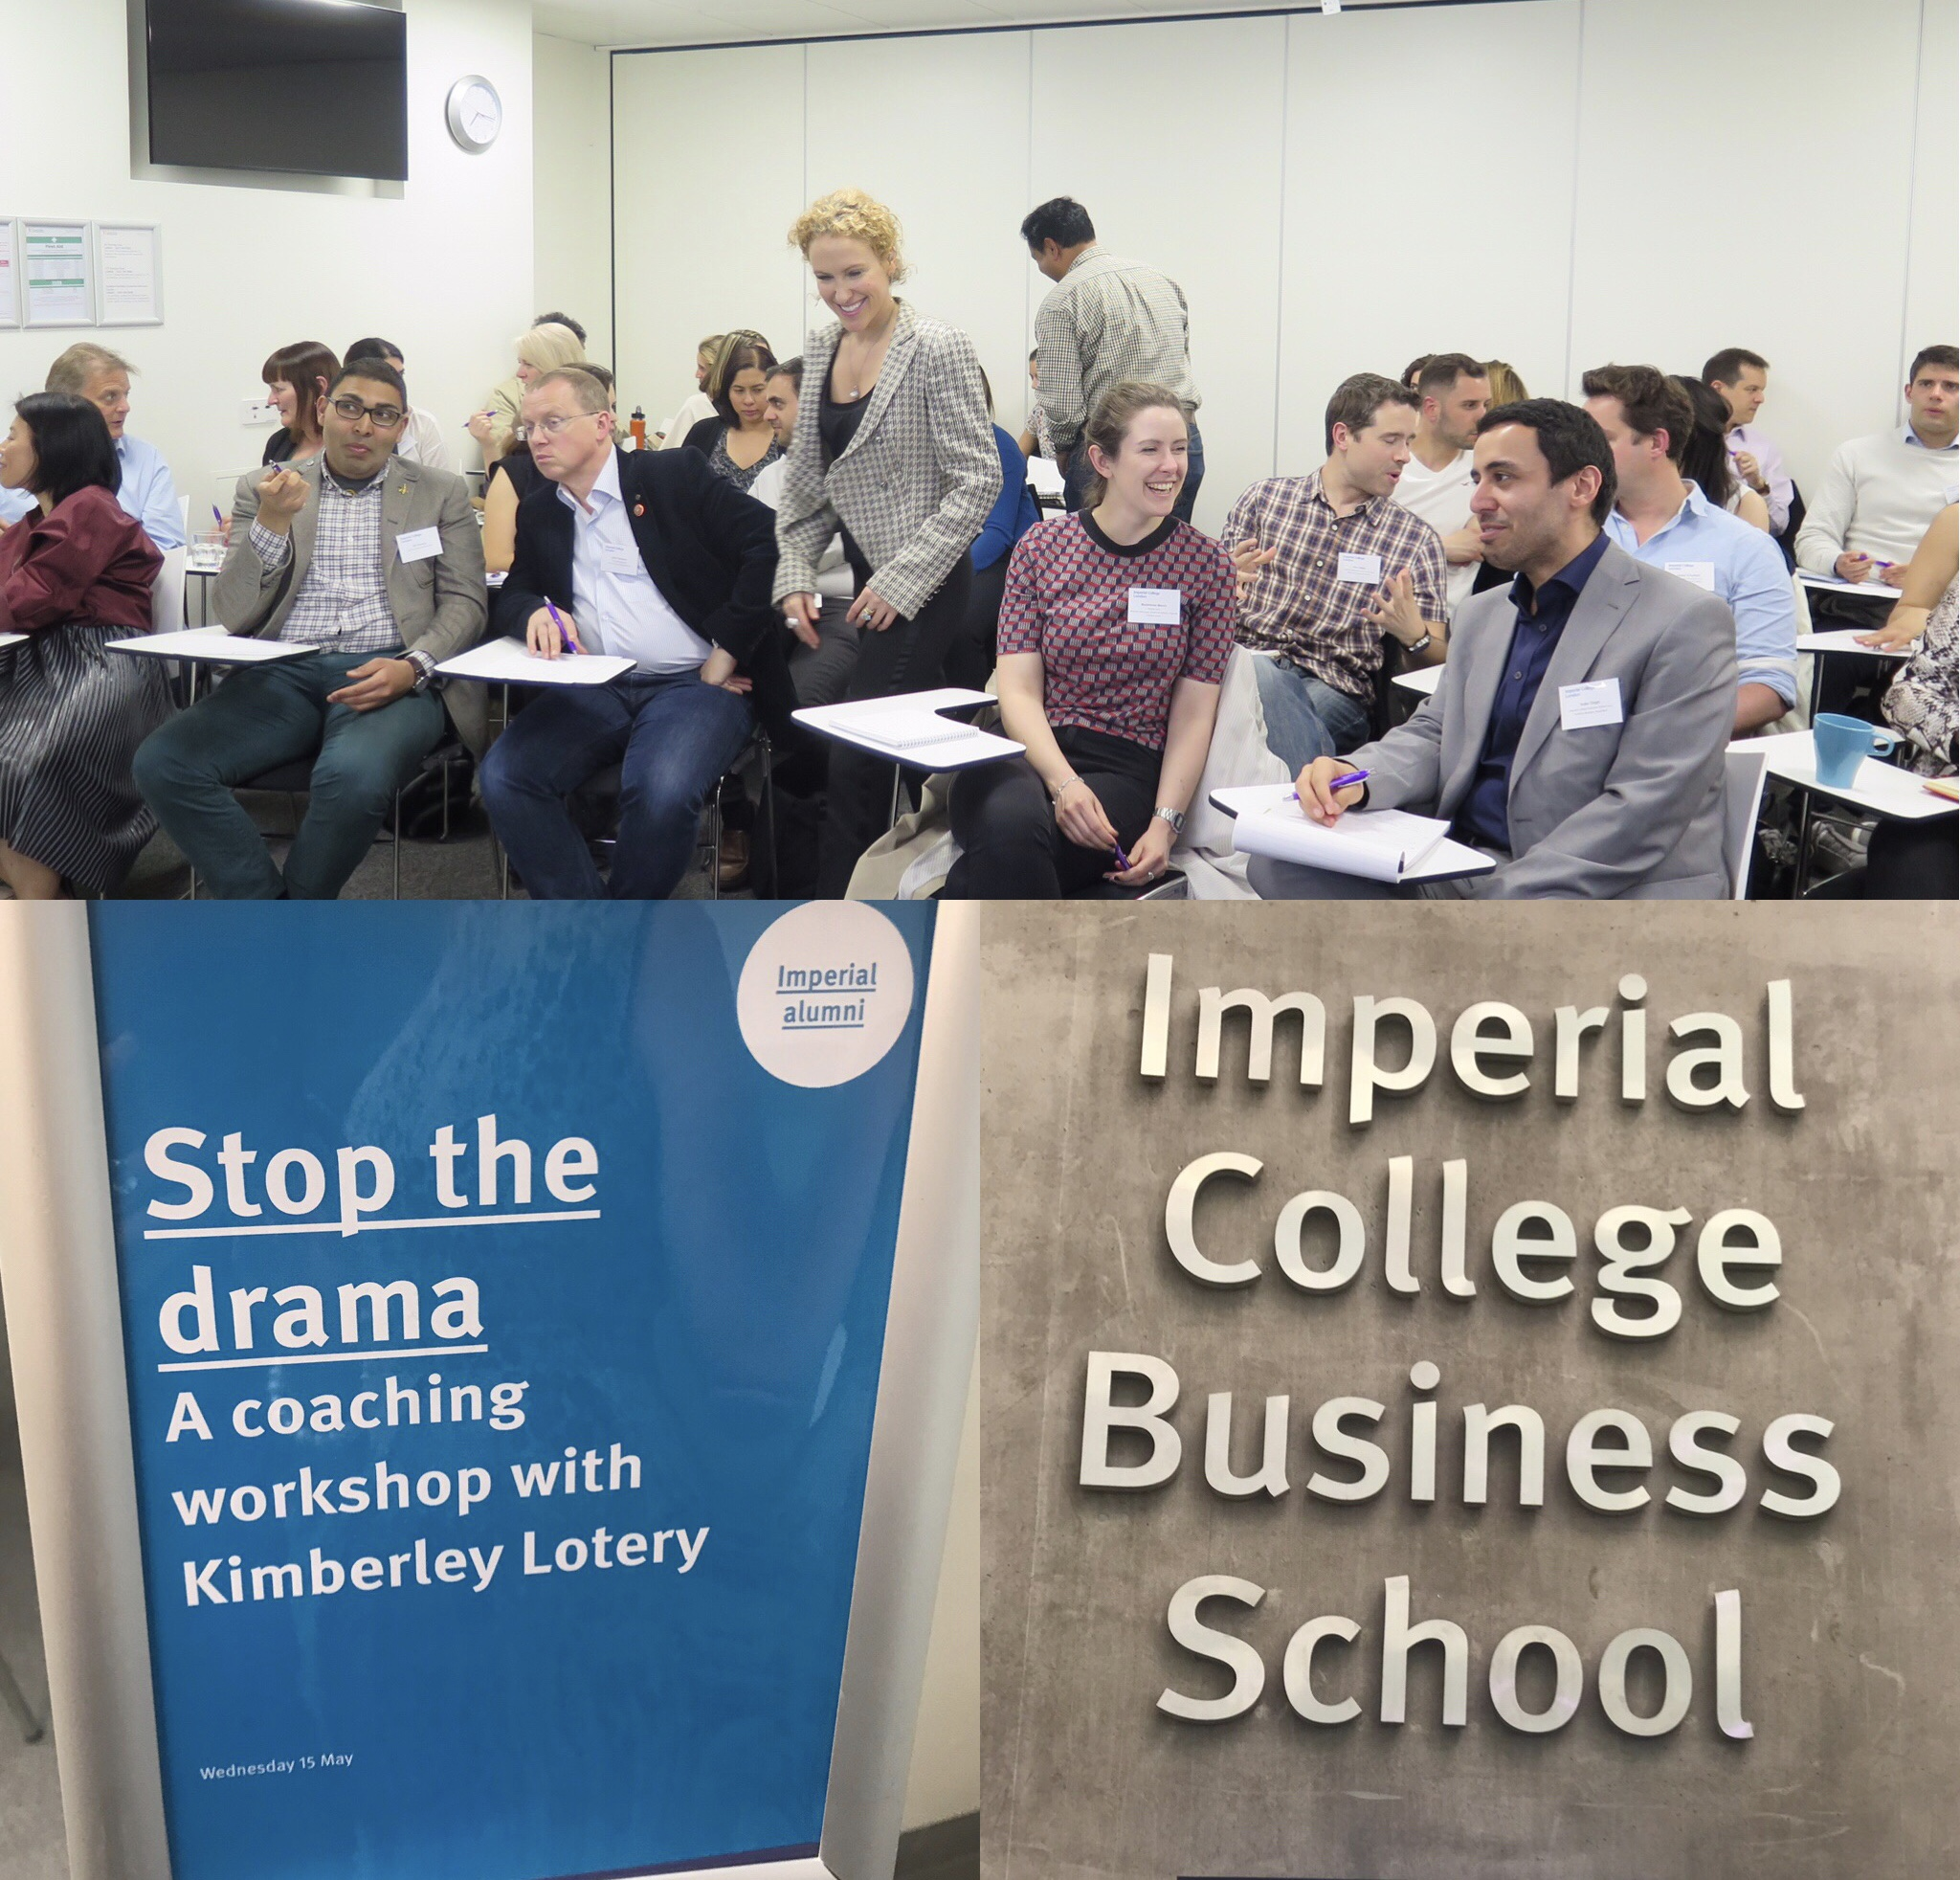 Coaching Workshop at Imperial College Business School